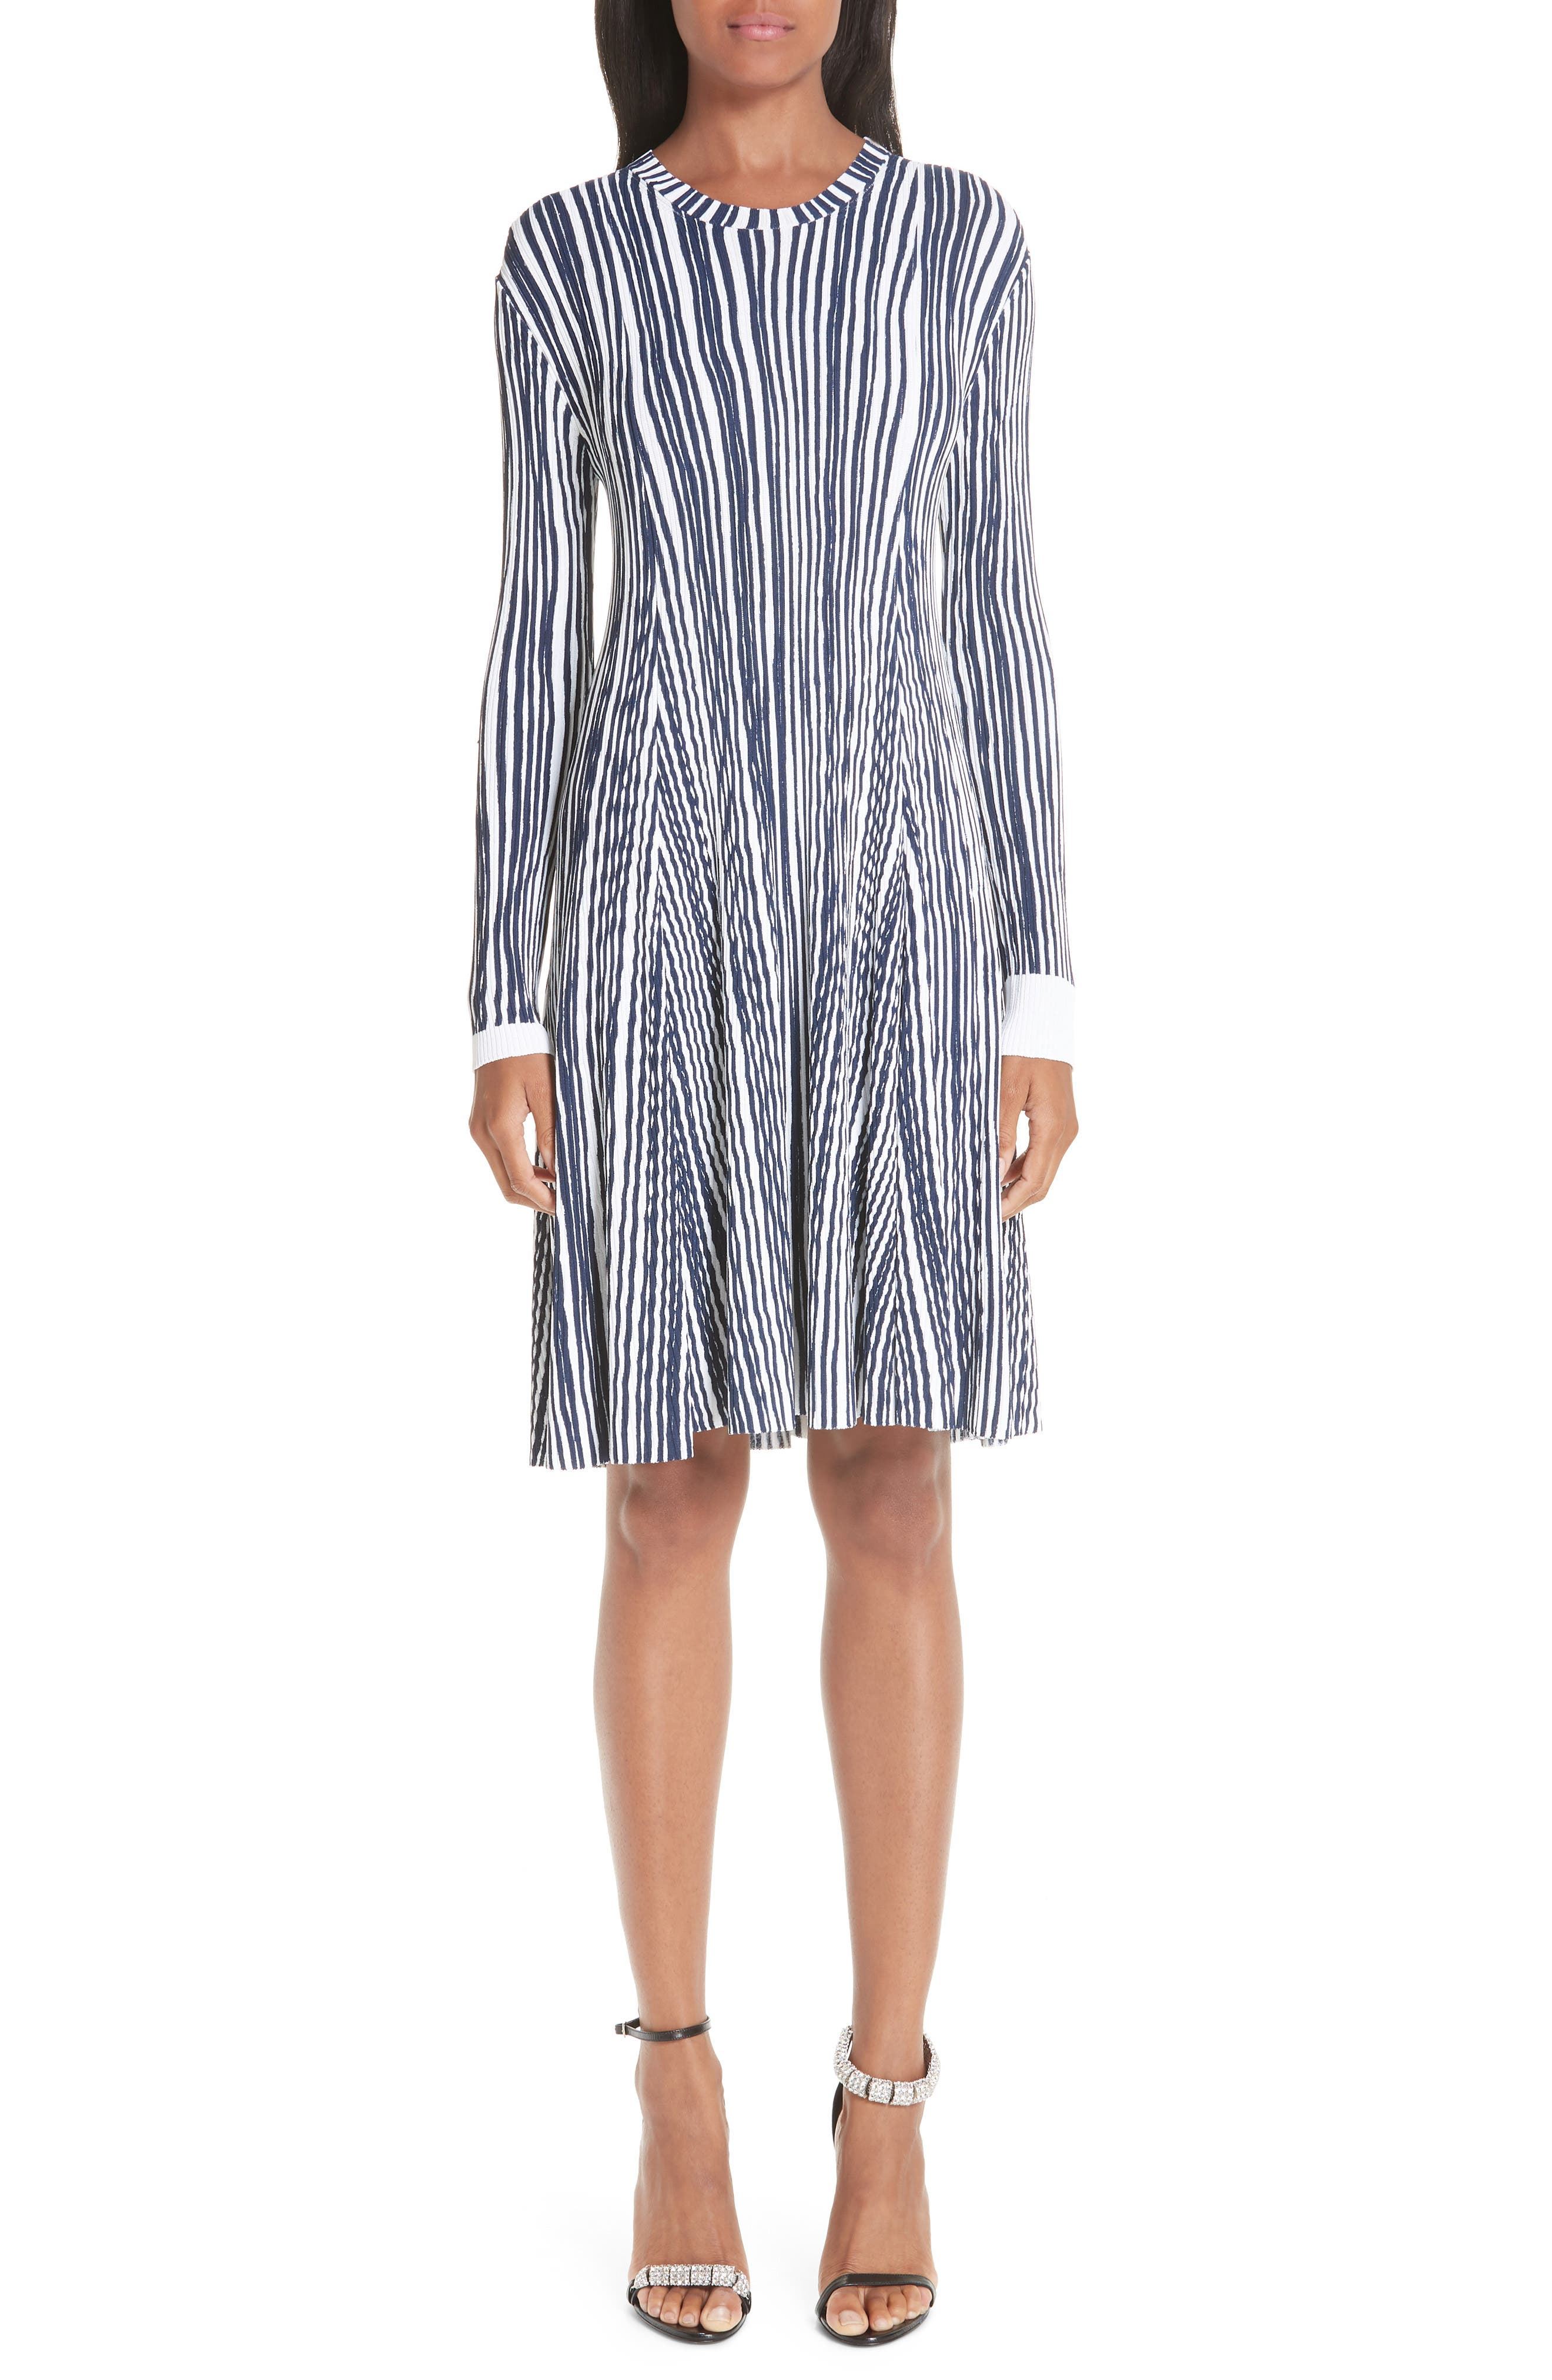 CALVIN KLEIN 205W39NYC Stripe Rib Knit Dress, Main, color, OPTIC WHITE INK BLUE